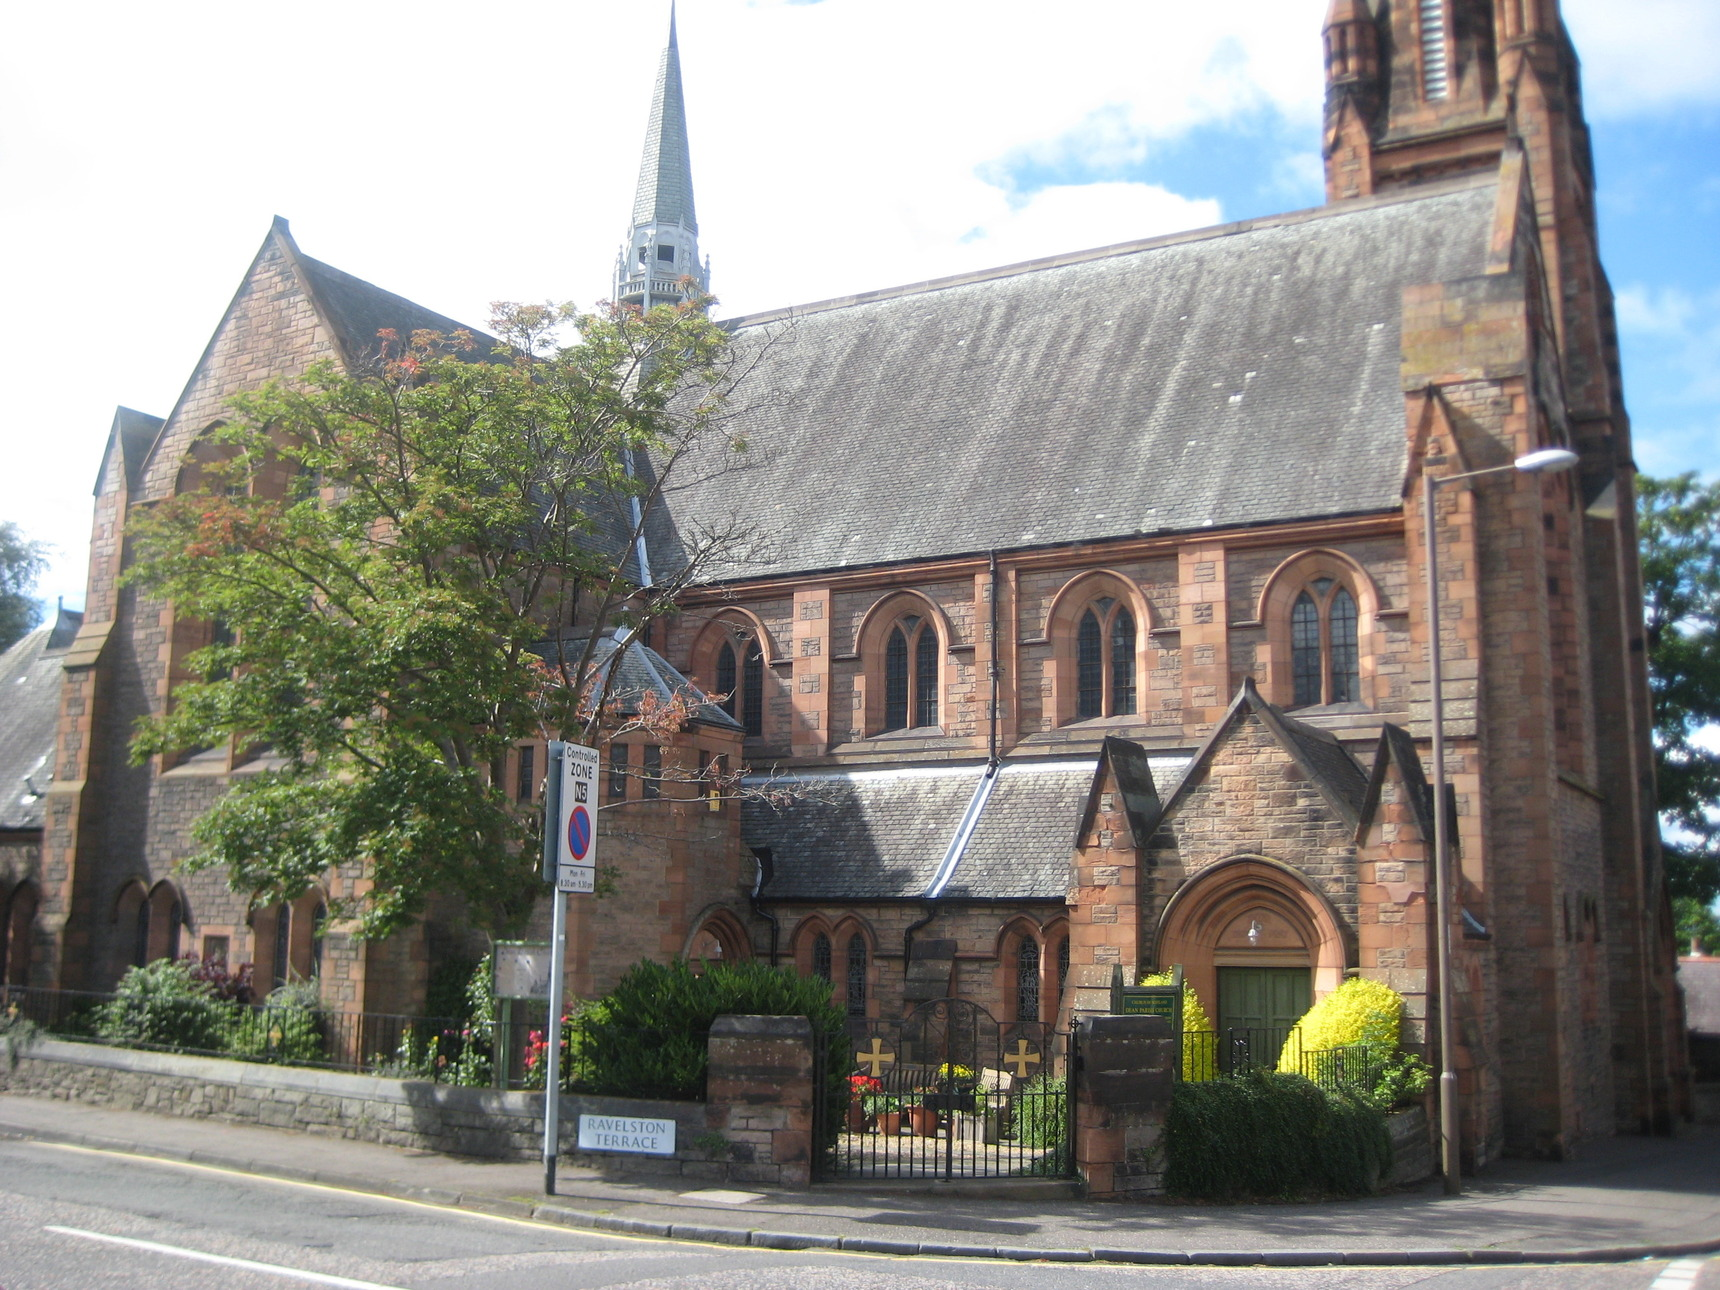 Margaret Lee - The Dean Parish Church played an integral part of family live in the Dean Village.